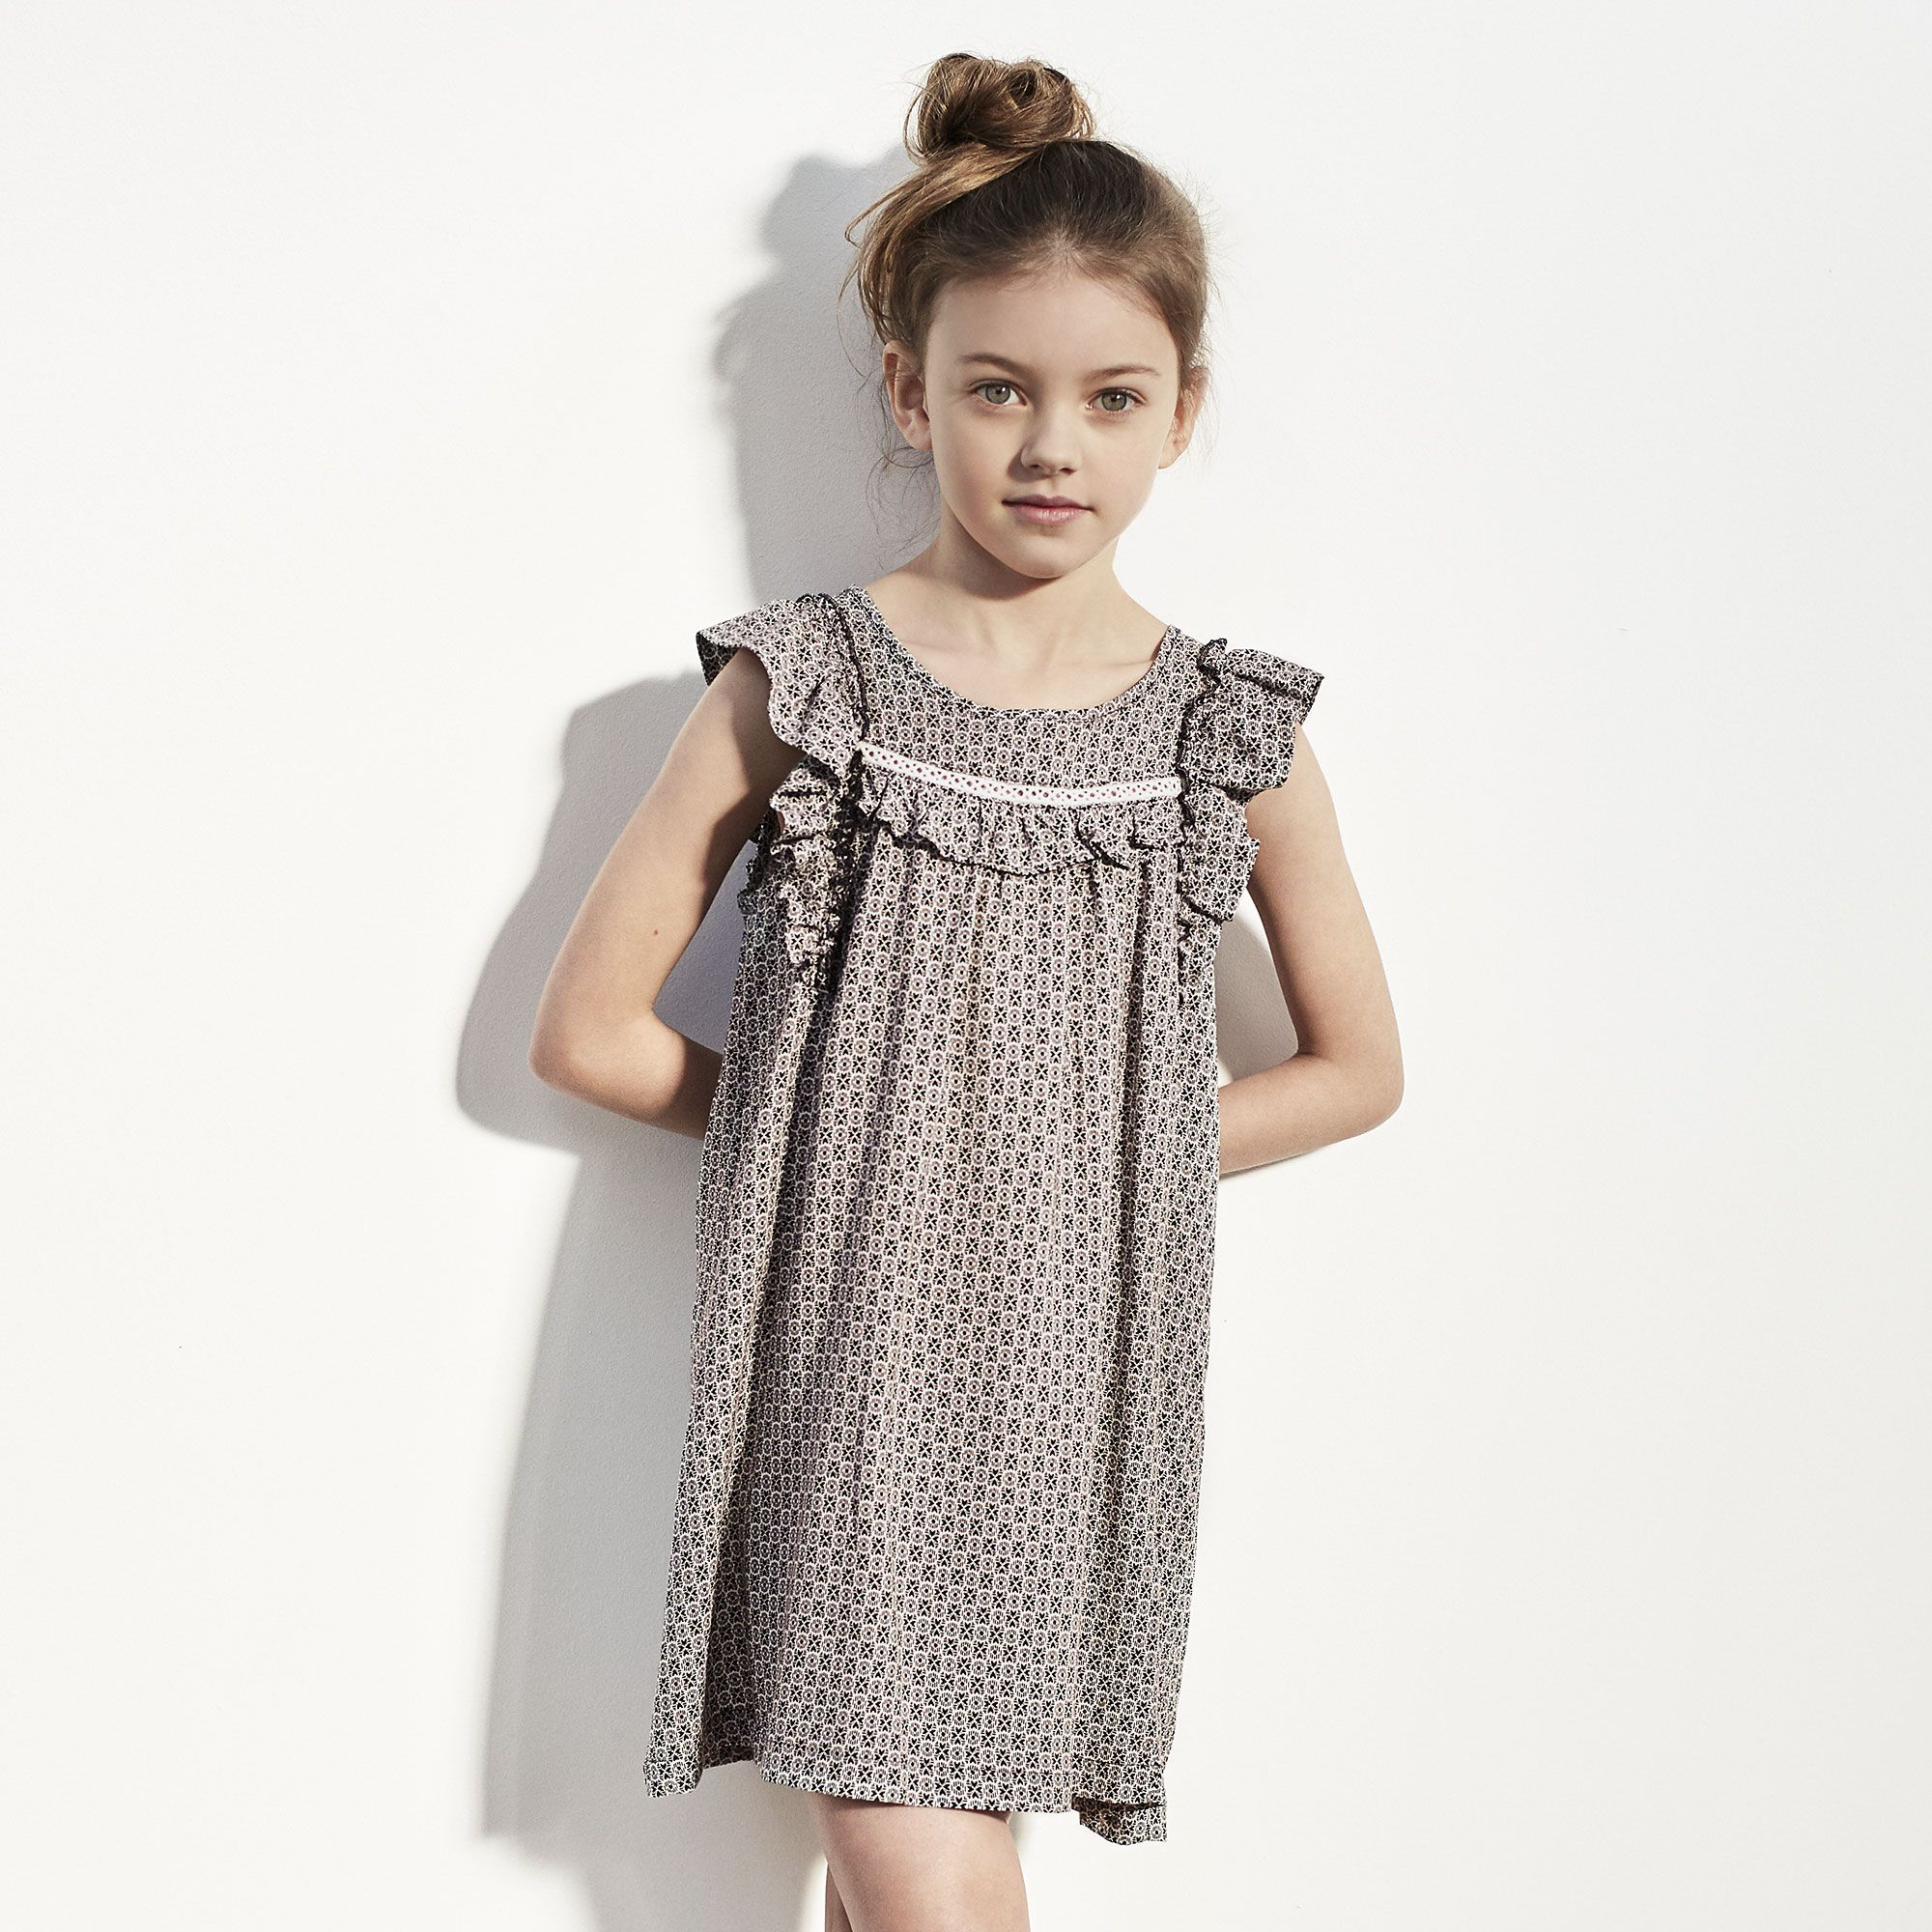 IKKS | Girls' dress (XH30062) | Girls' Clothes, Summer 2016